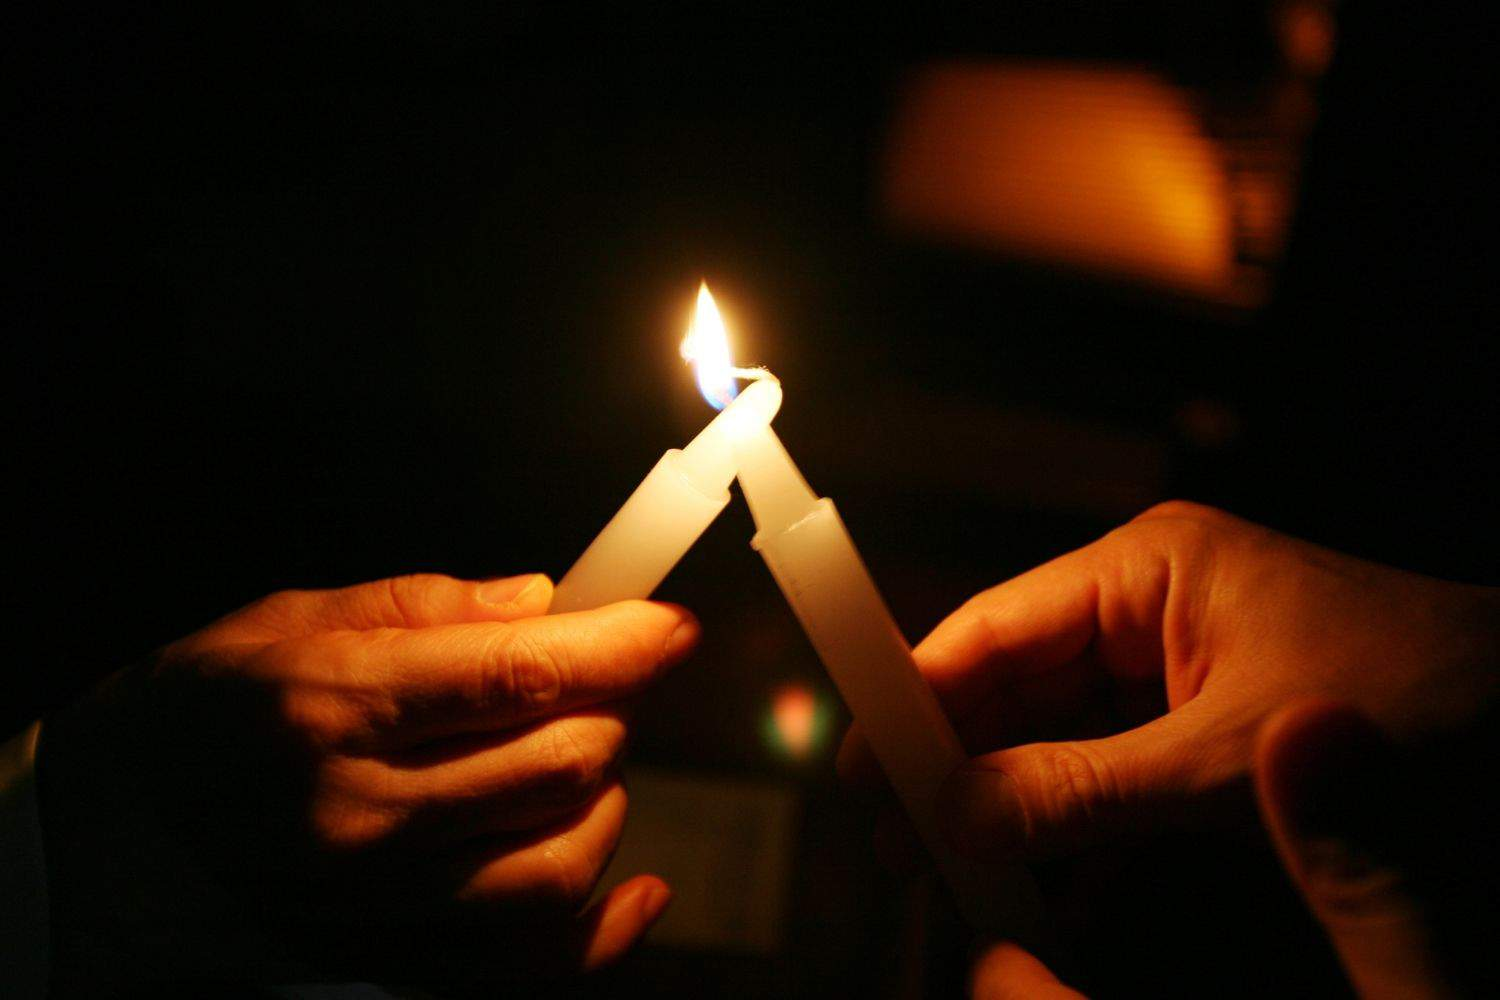 one candle being lit by another candle being held in hands